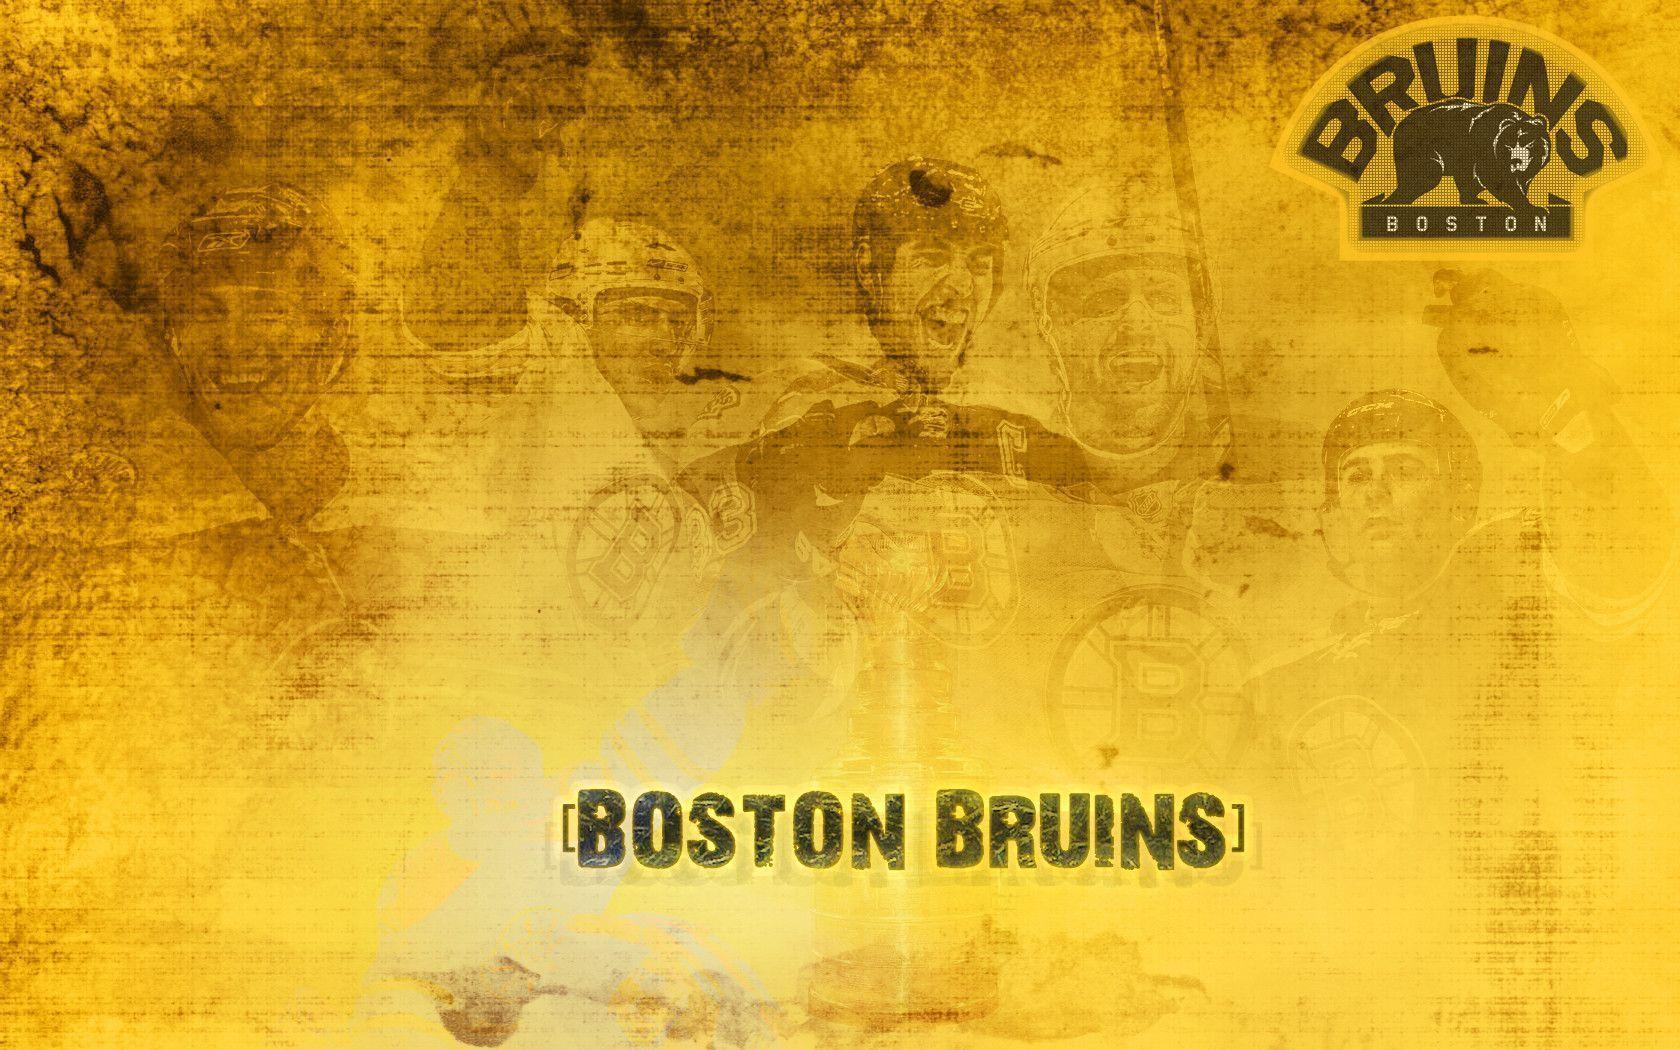 Boston Bruins wallpapers | Boston Bruins background - Page 9